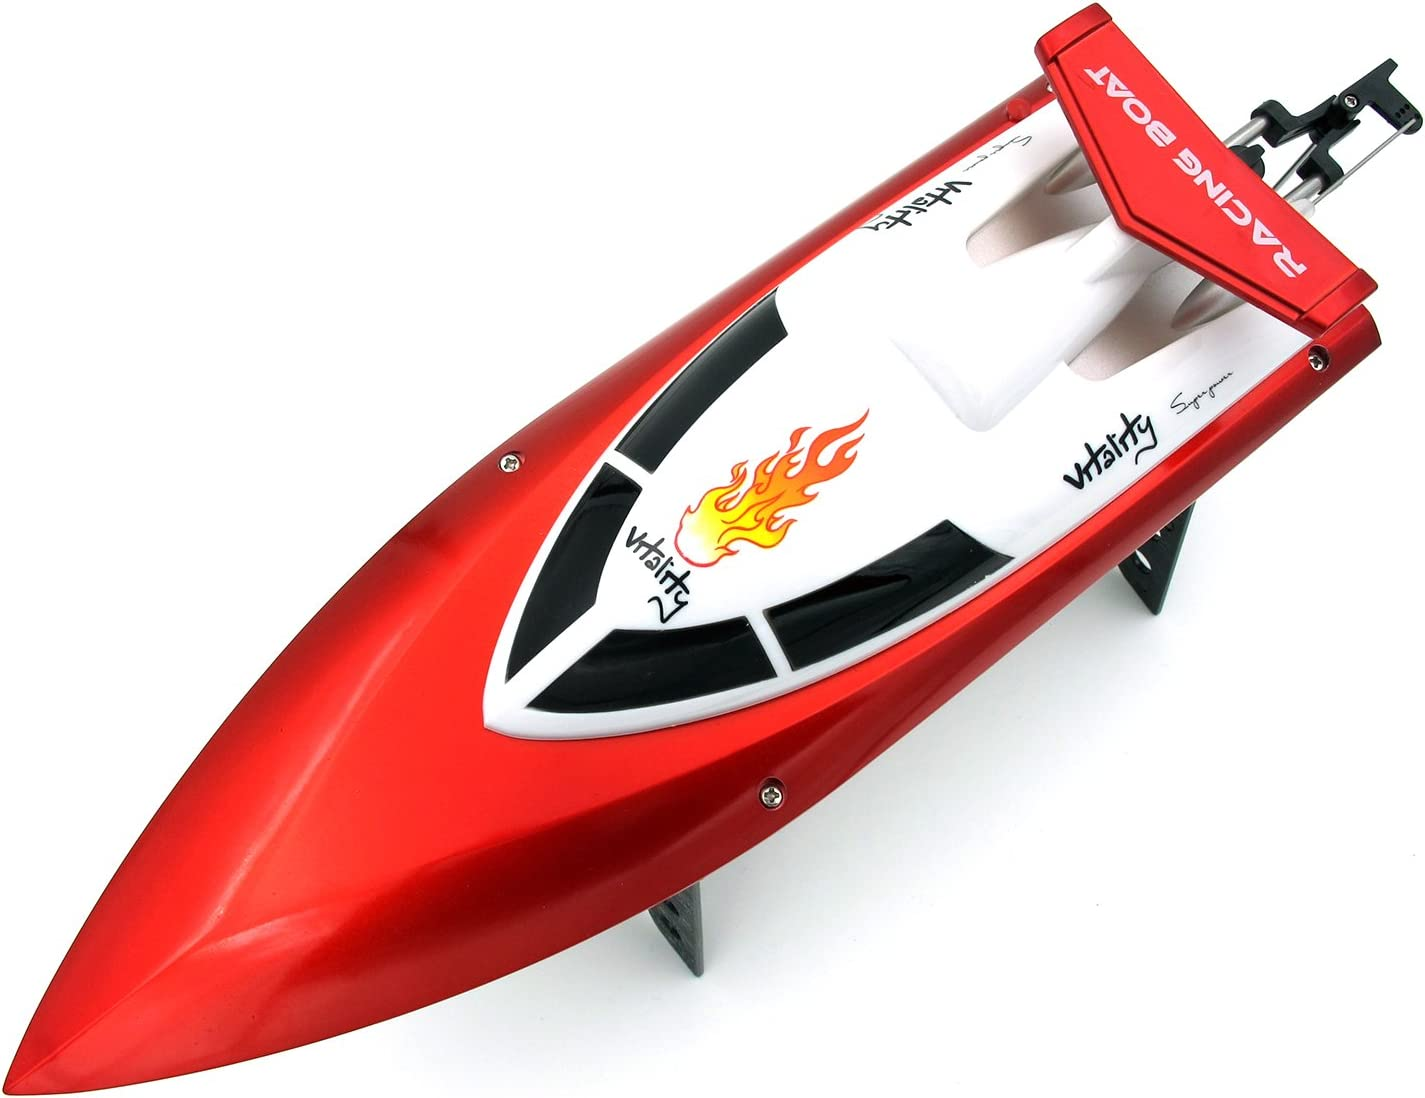 Red DOPLUS Auto-Flip RC Boat for Kids /& Adults 2.4GHz Wireless Remote Control High Speed Racing Boat